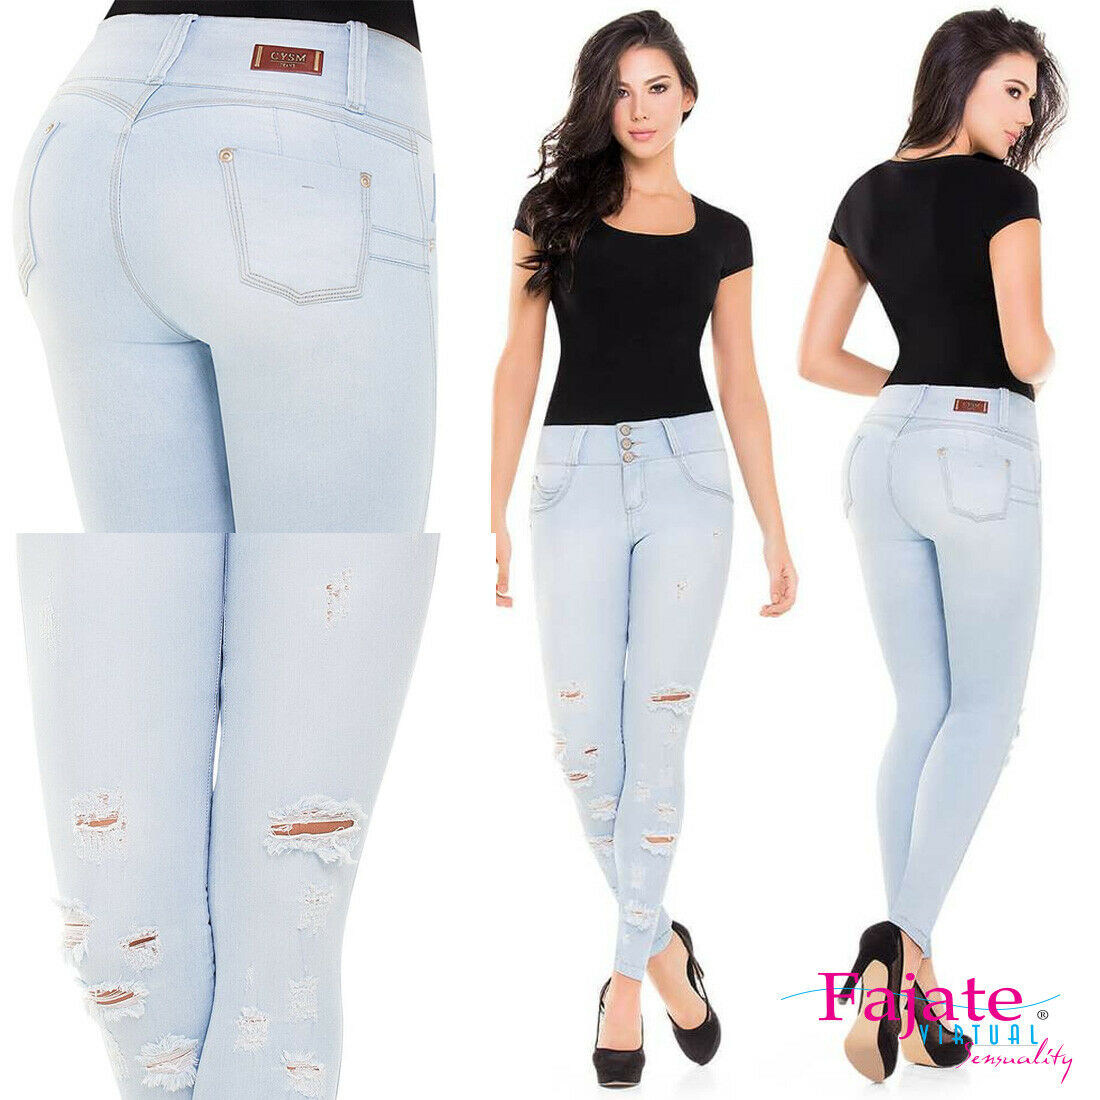 High Waistband Colombian Butt Lifter Jeans Skinny Stretch Push Up Pants Jeggings